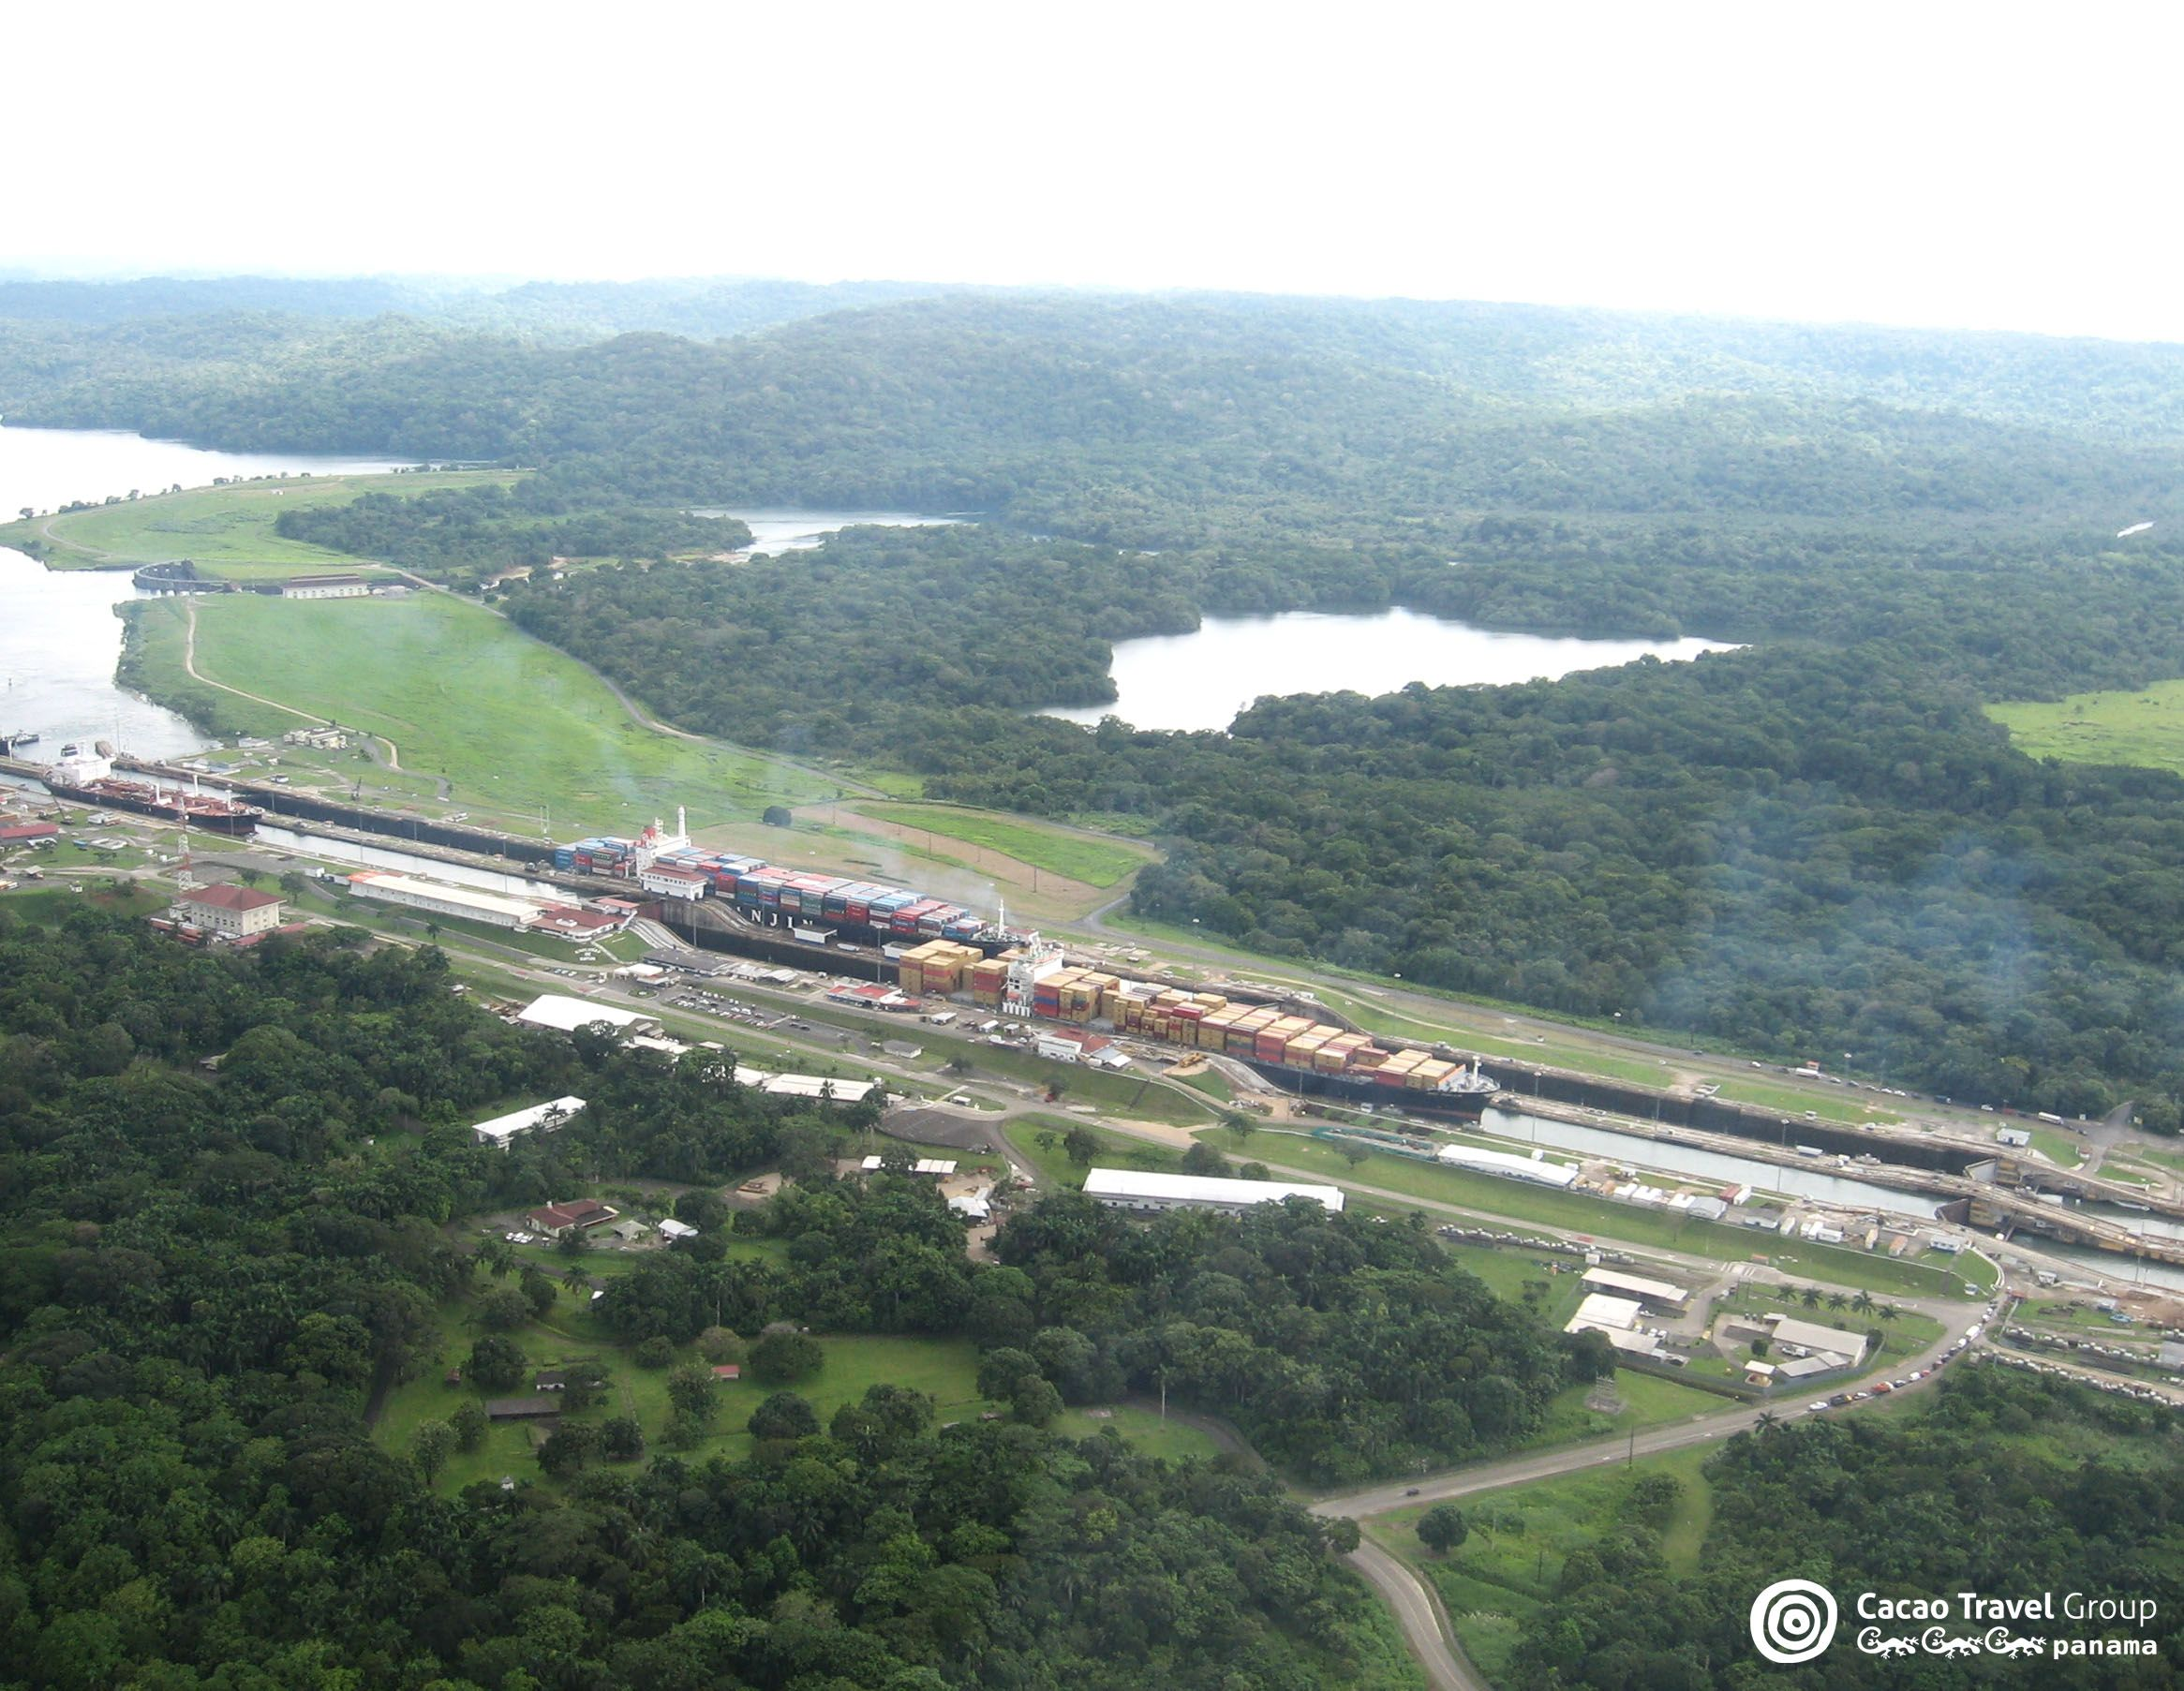 Aerial View Of The Gatun Locks And The Thick Rainforest That Surrounds Them These Are The Largest Set Of Locks Of The Panama Canal Lo Kreuzfahrt Panama Miami